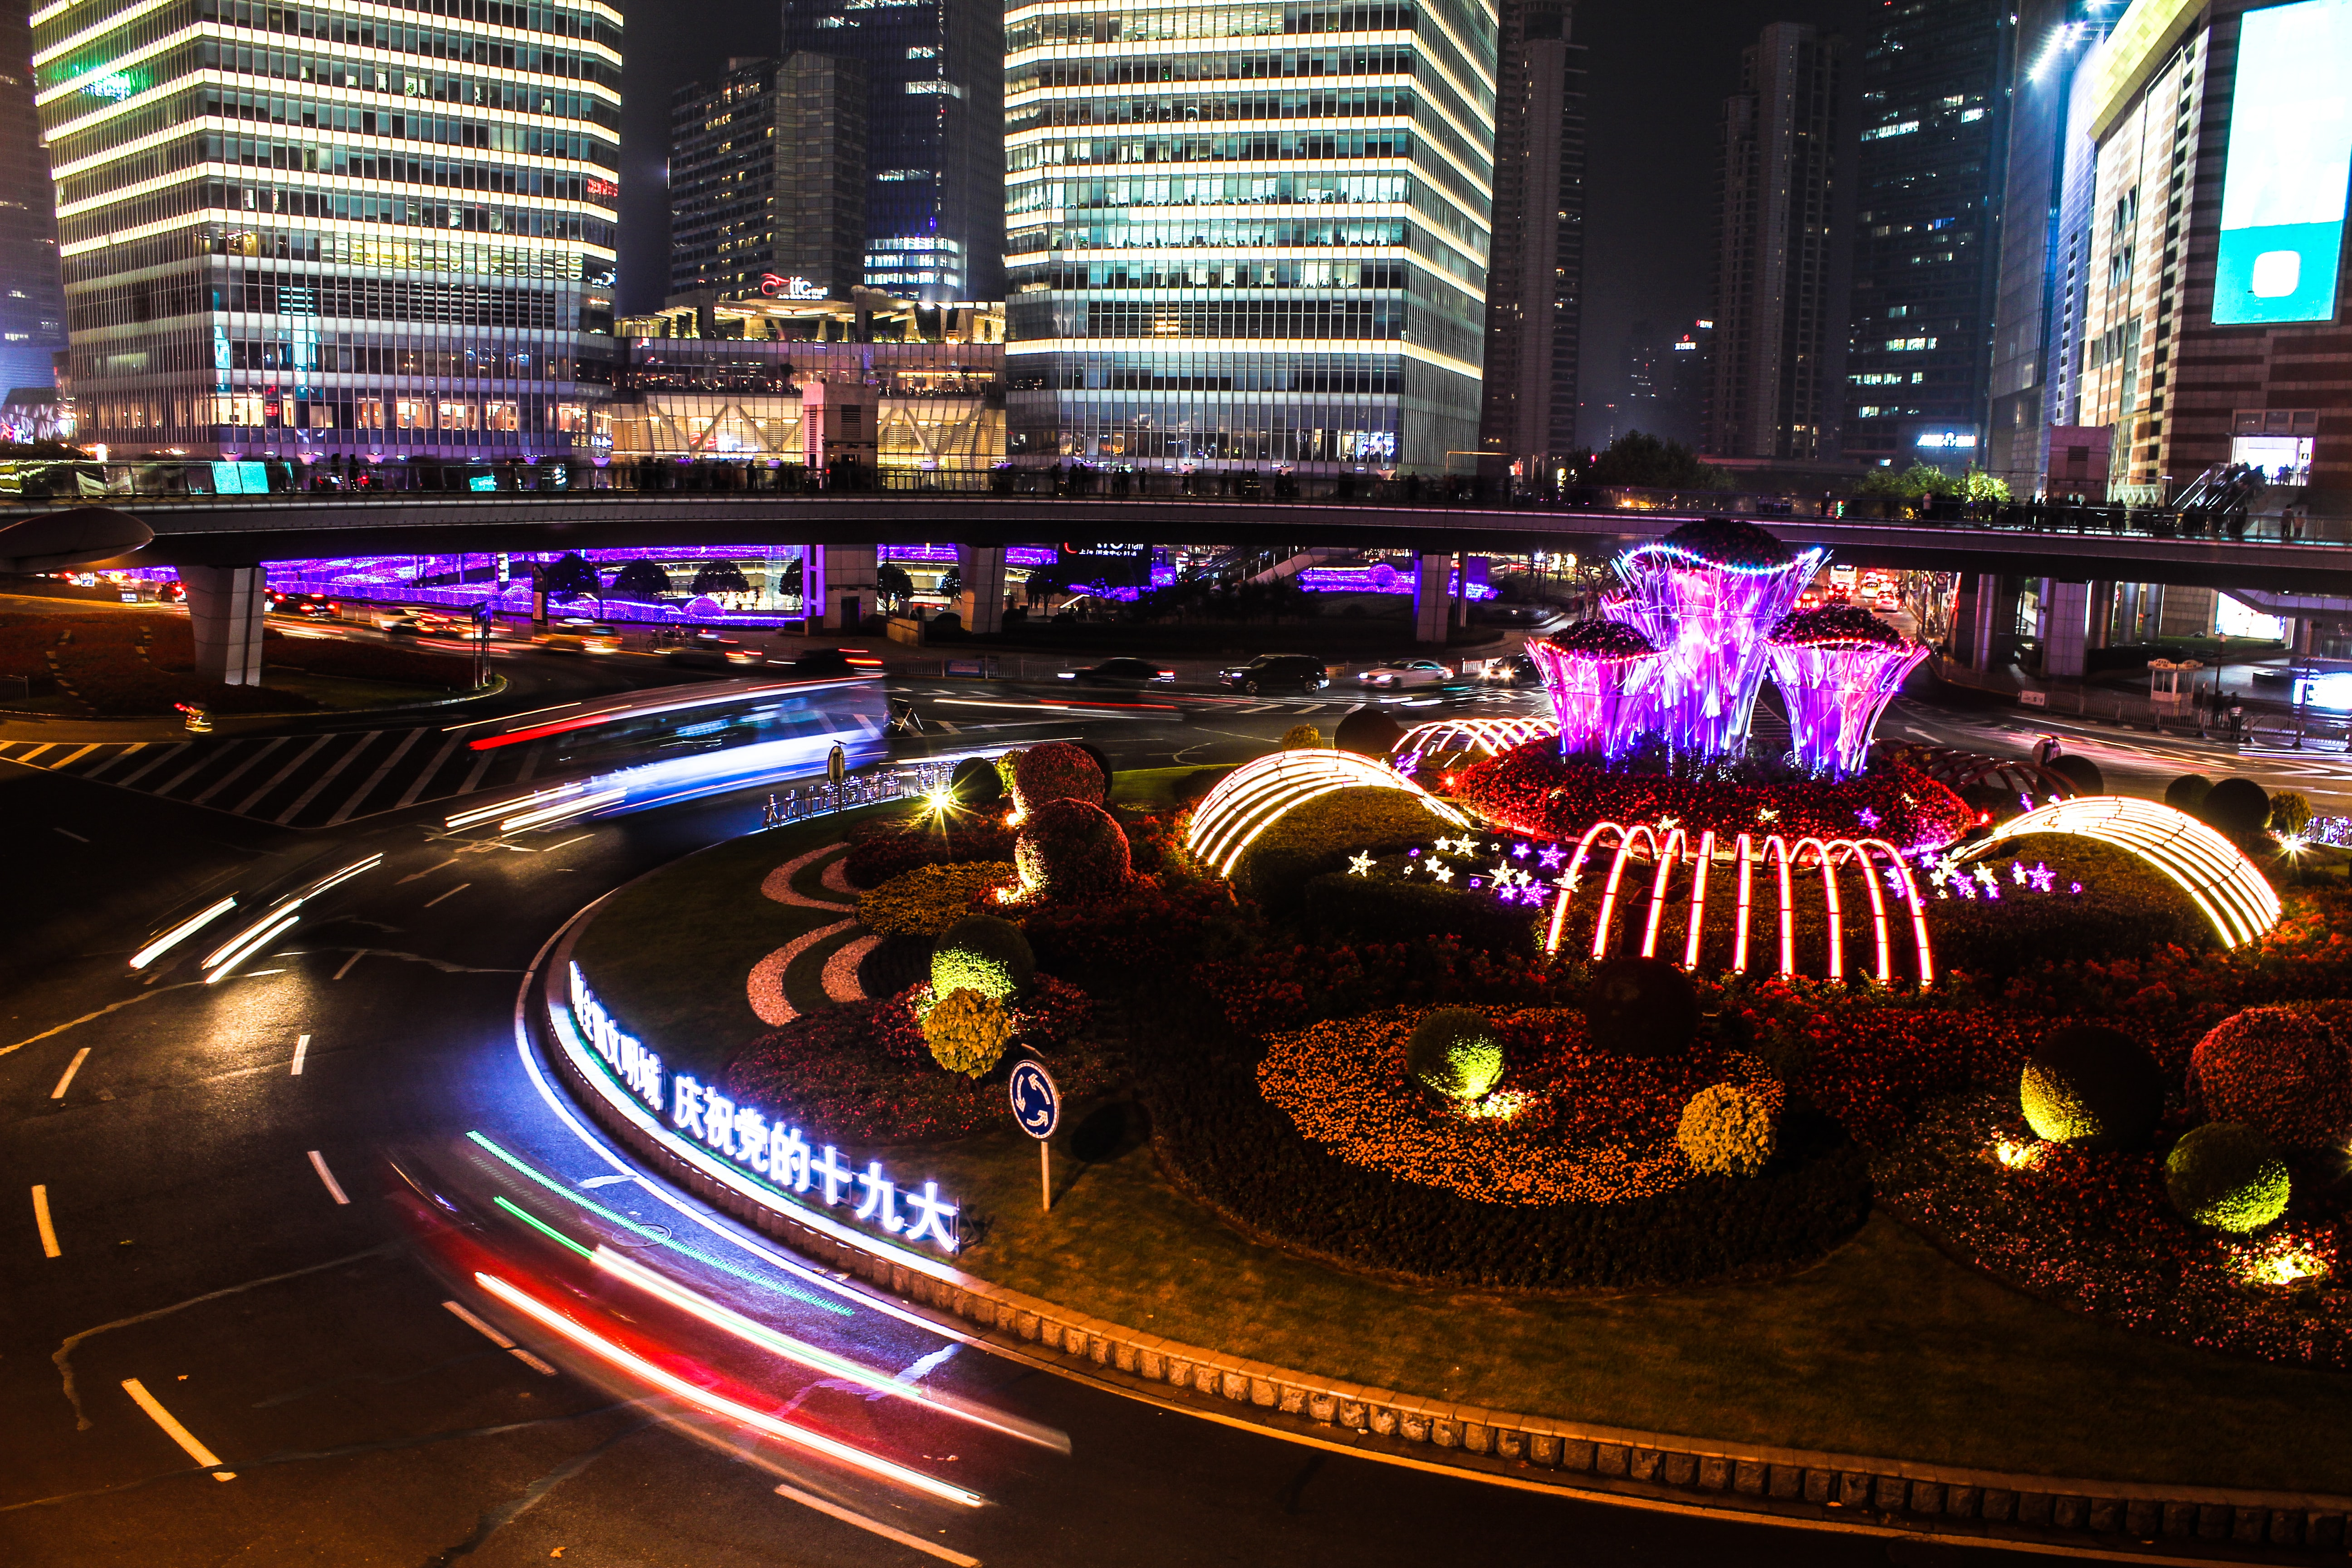 time-lapse photography of lighted fountain near buildings at night time